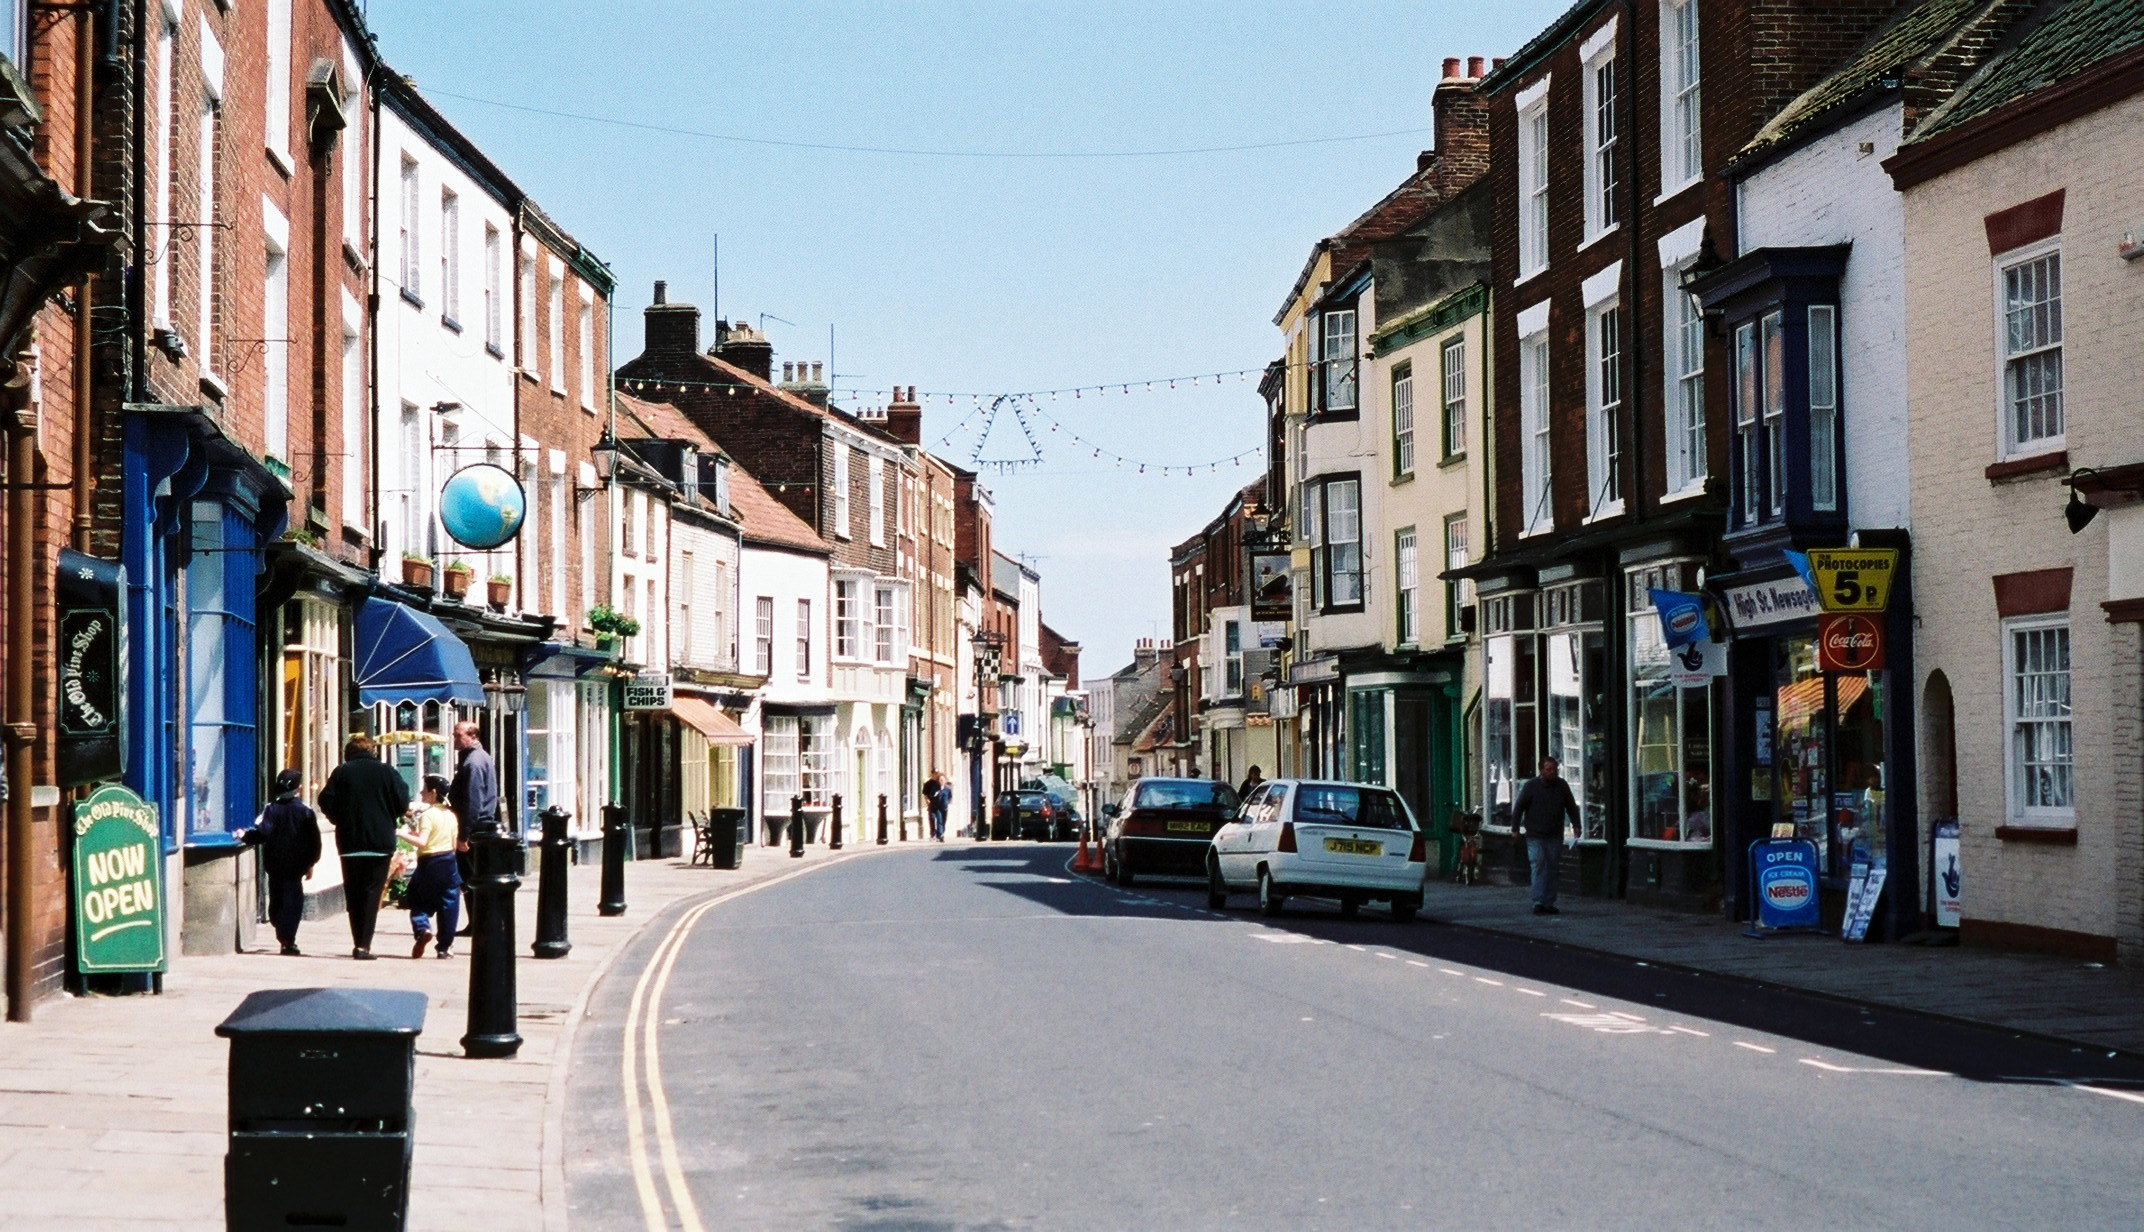 Explore the delights of Bridlington Old Town